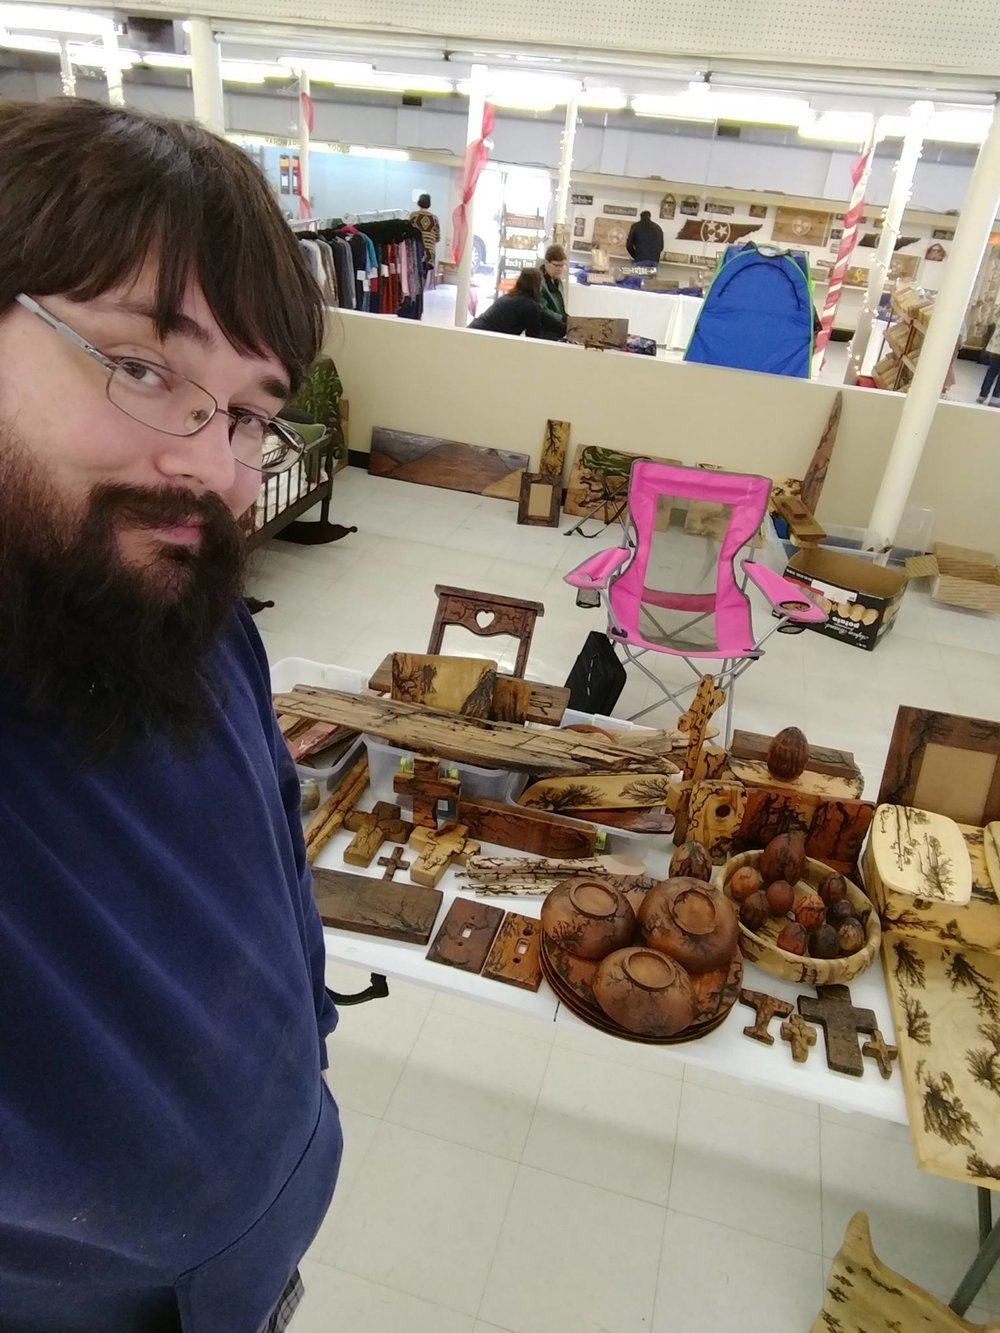 You can find most of Brenden's wares in-person at various local markets.